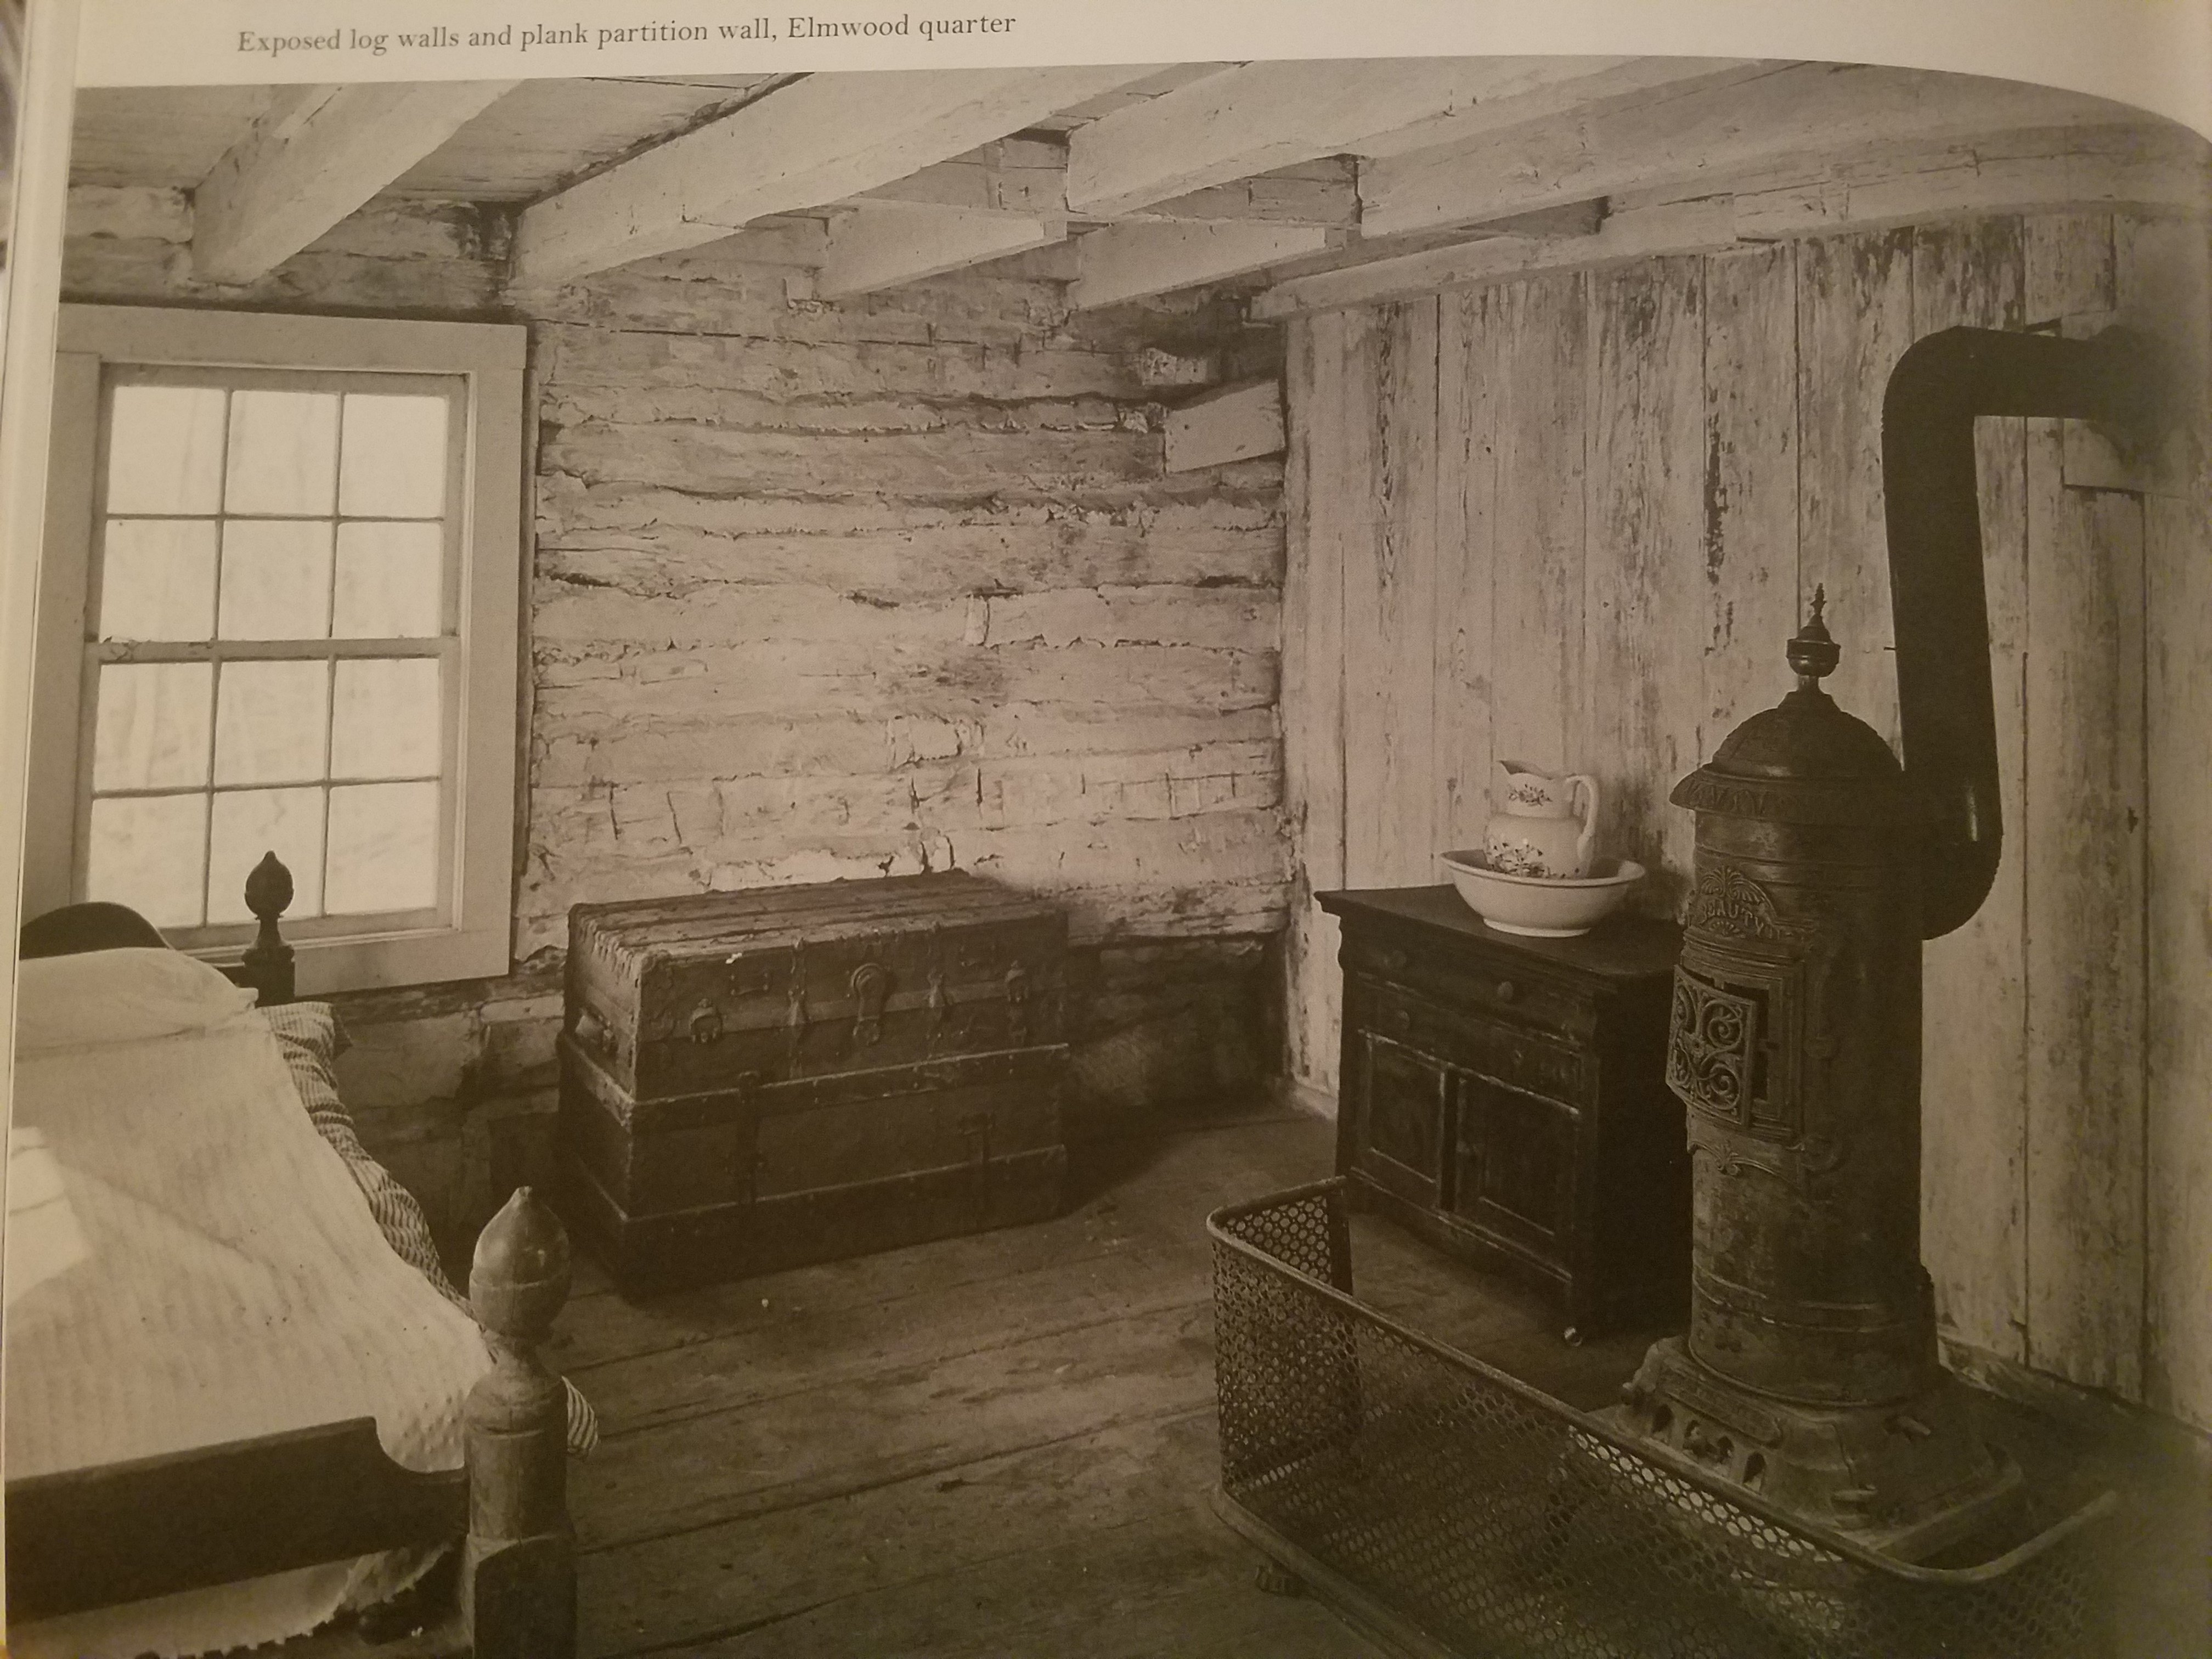 This inside view of the interior of the slave quarters provides a glimpse into the conditions slaves lived in and their history here.